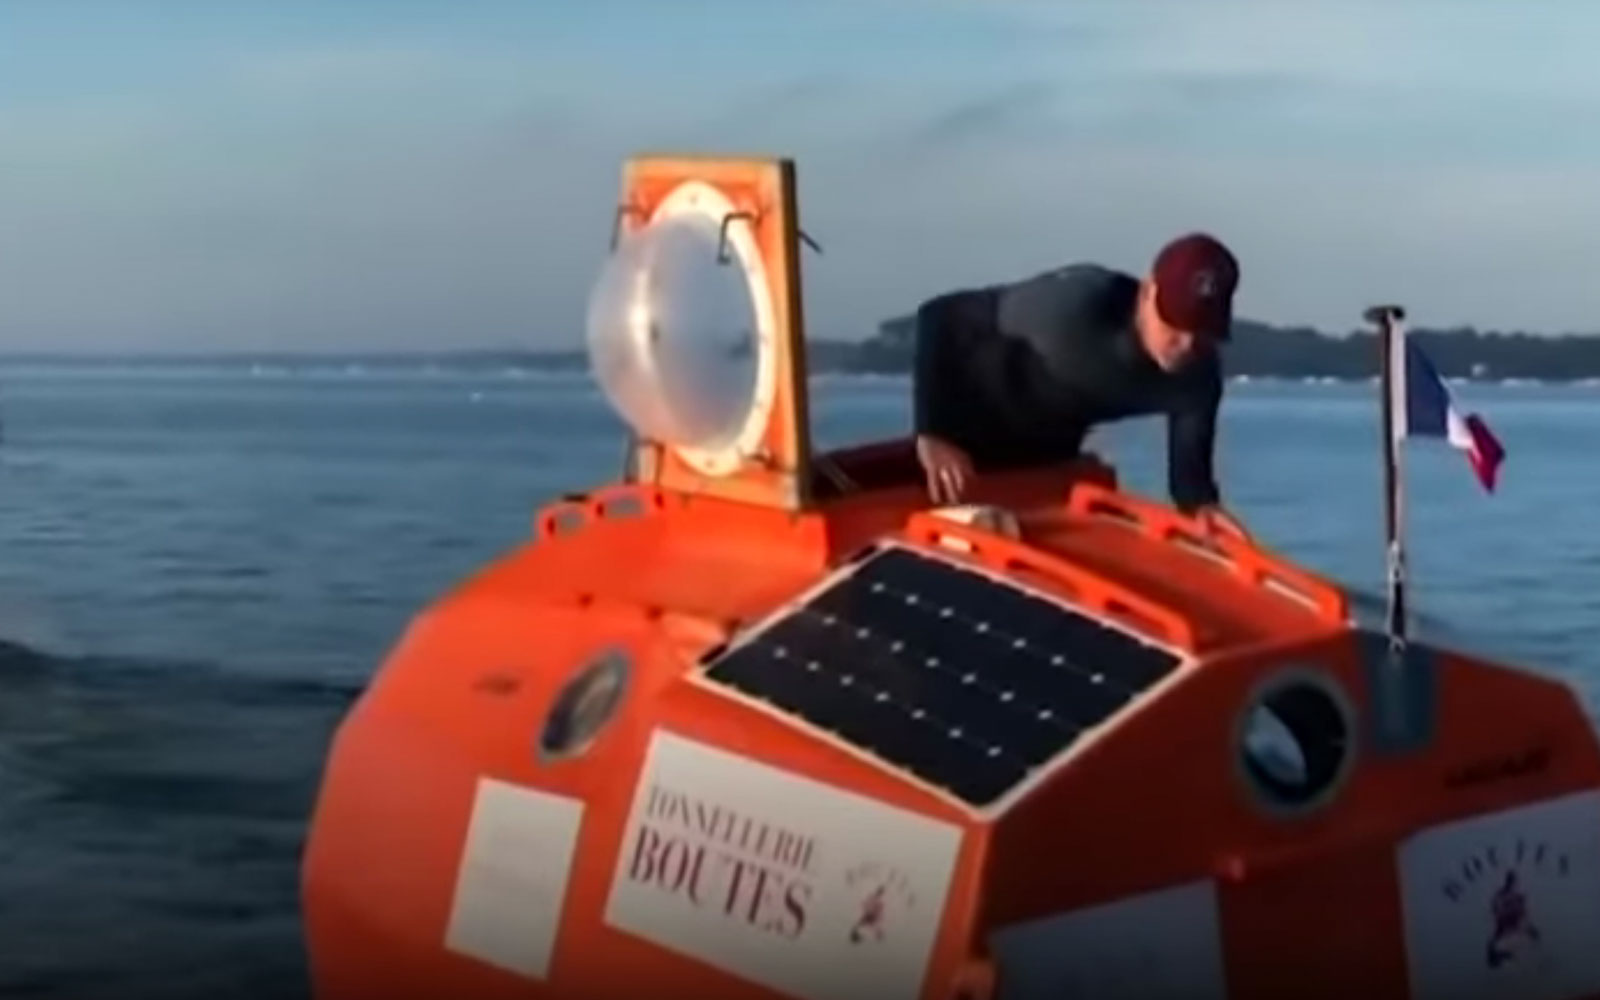 Septuagenarian from France to cross the Atlantic in a barrel (YouTube Video)